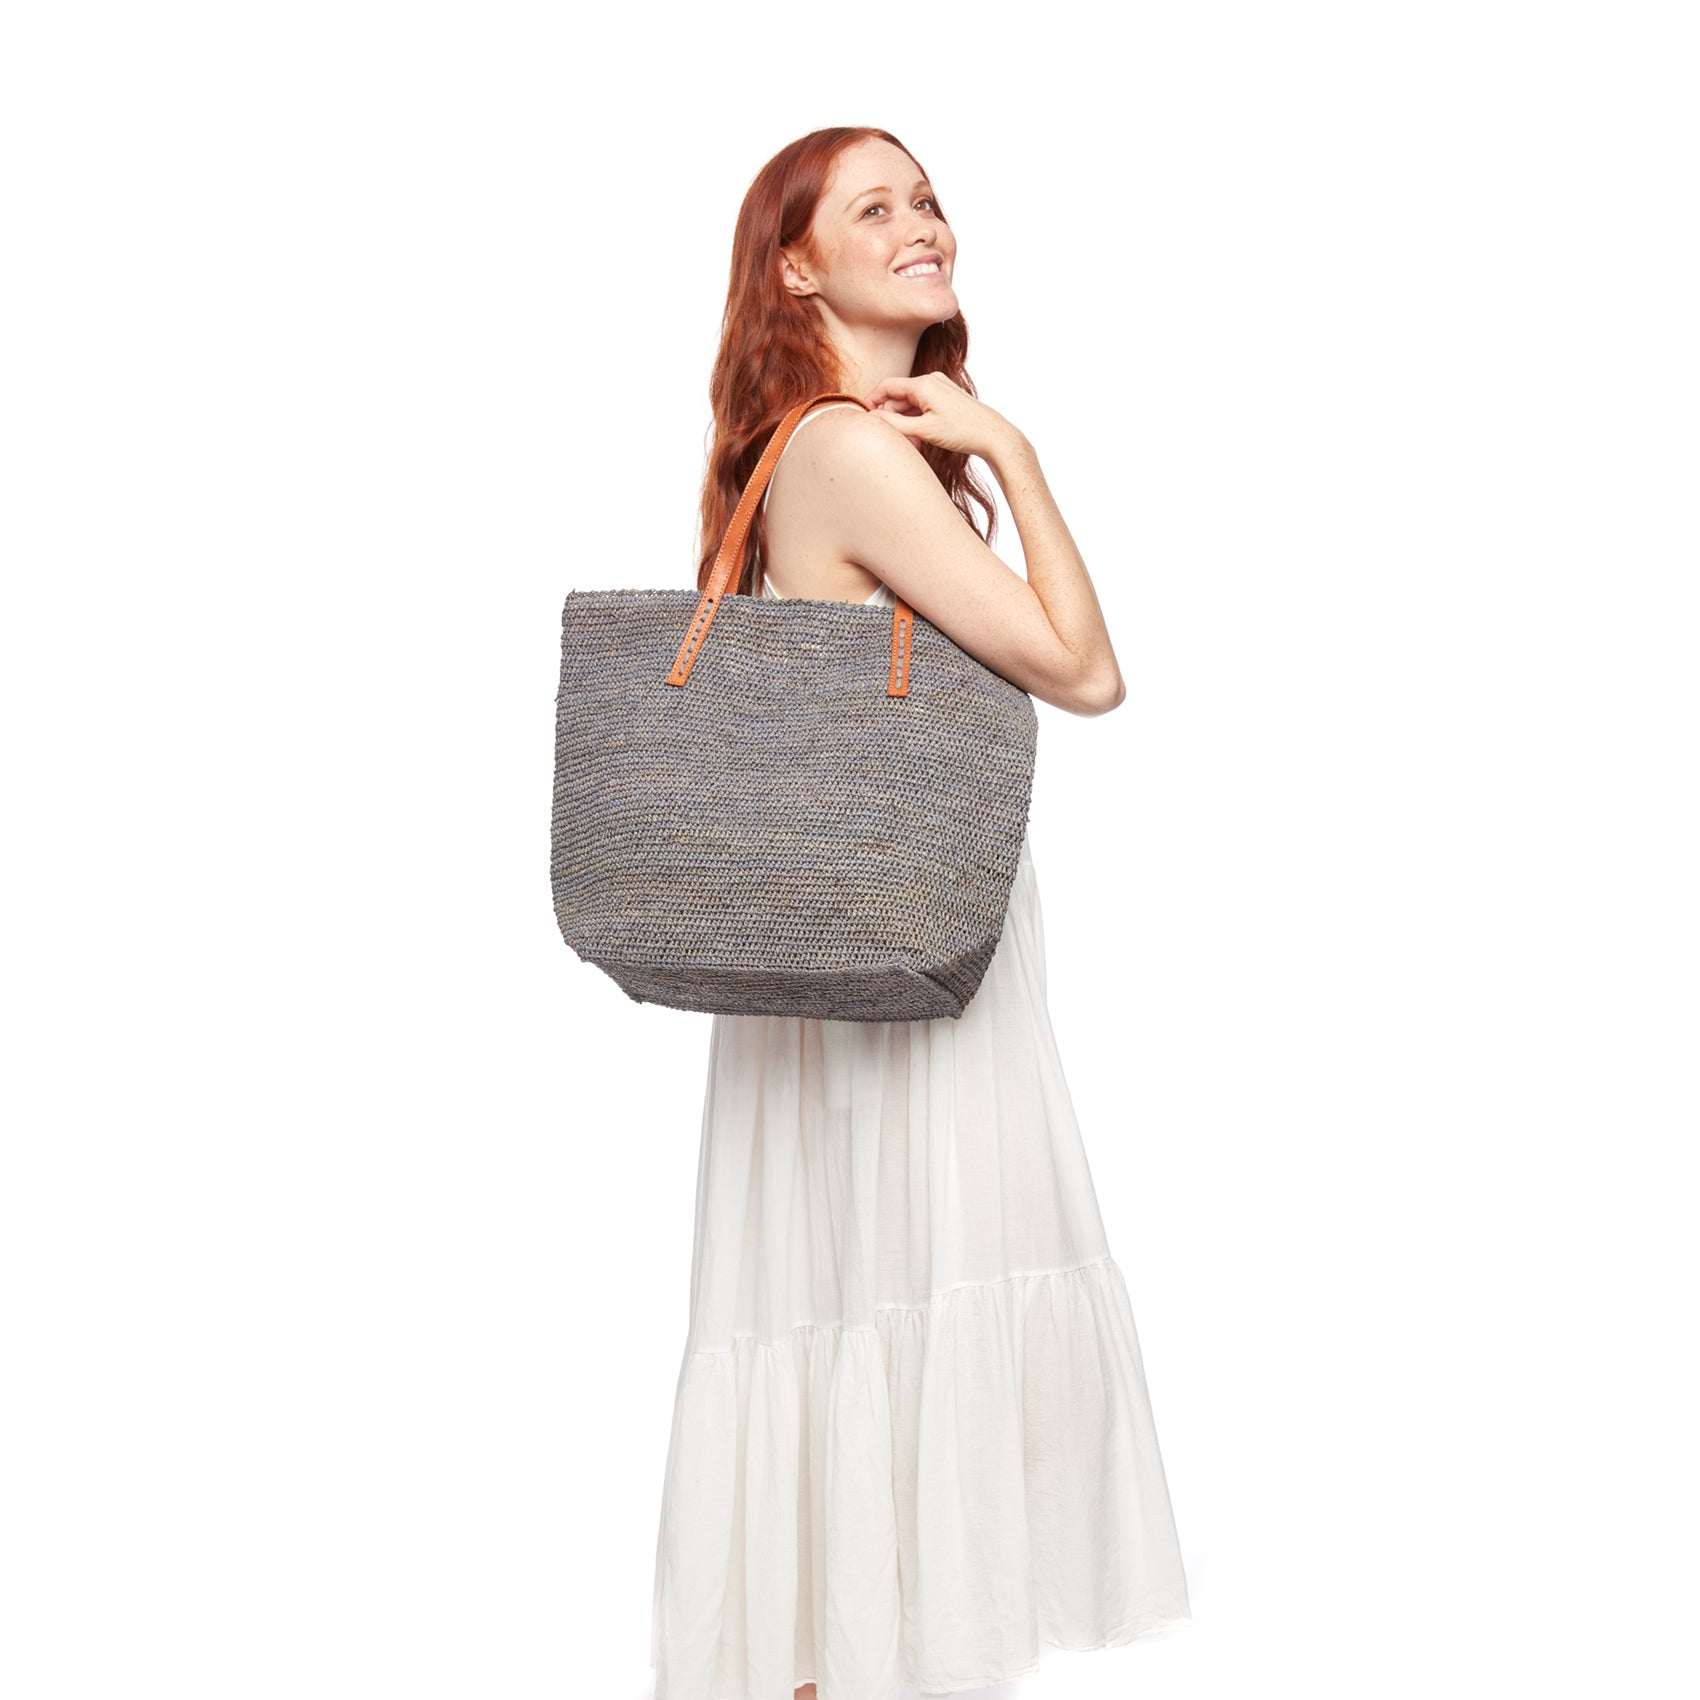 Portland Natural Soft Shoulder Tote Bag